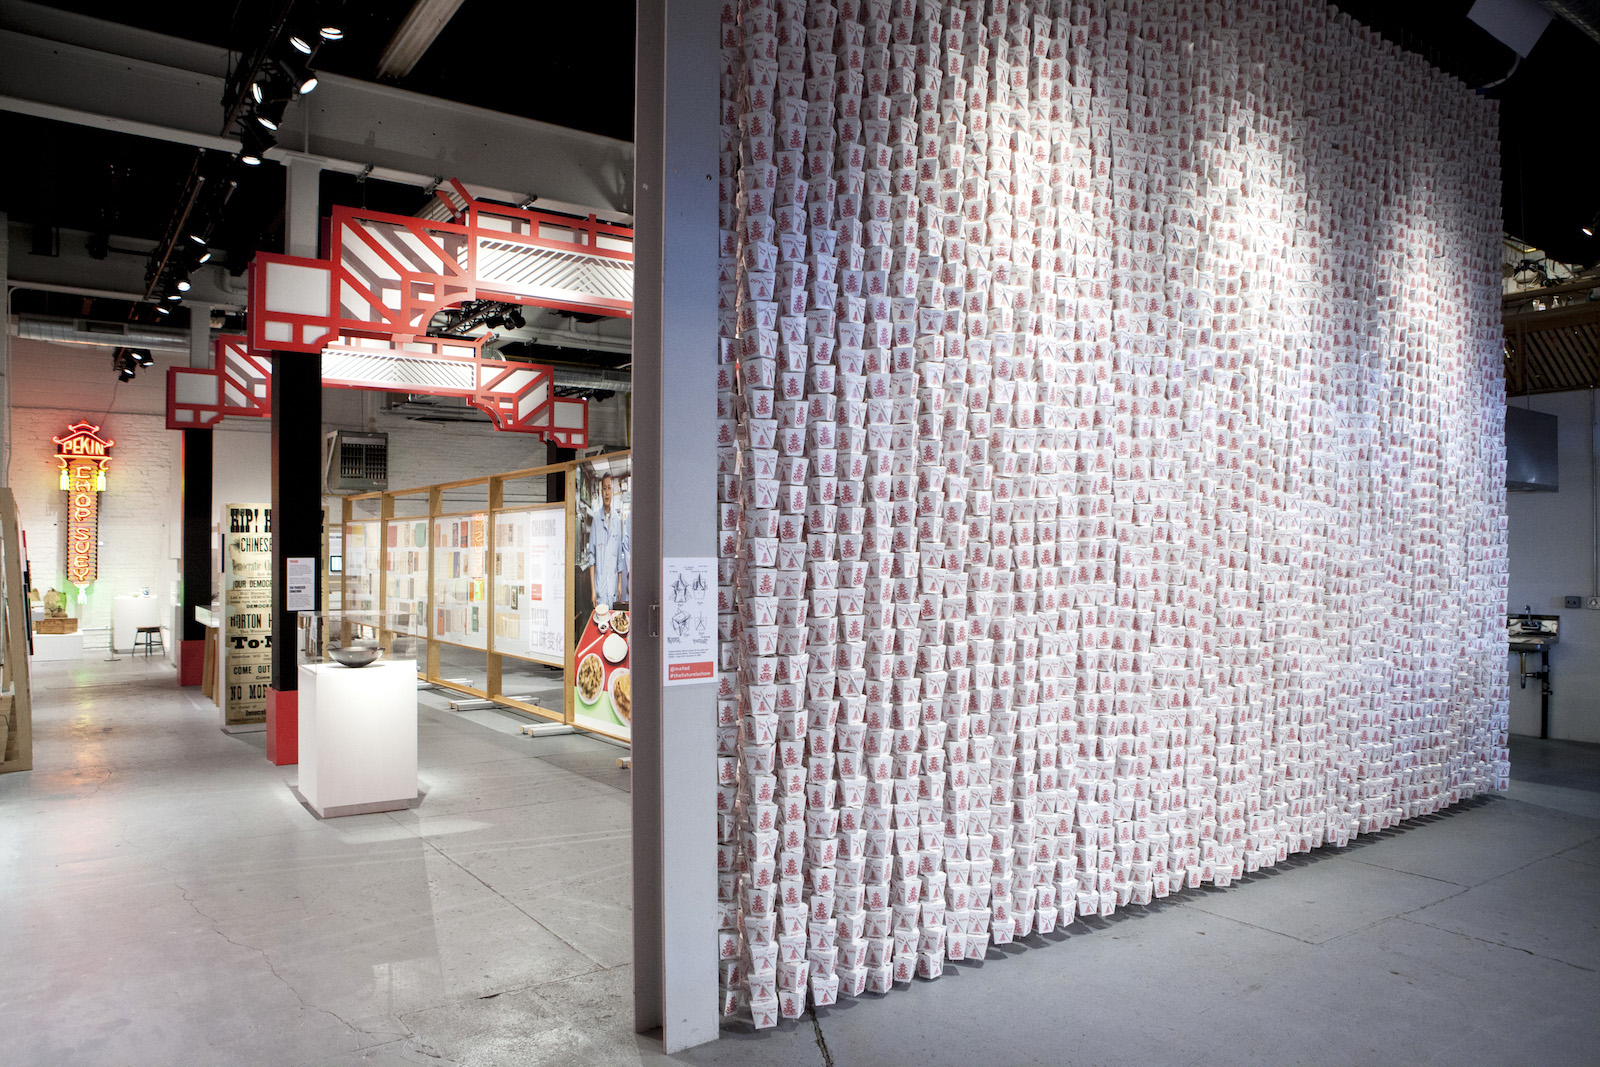 mofad-chow-takeout-wall